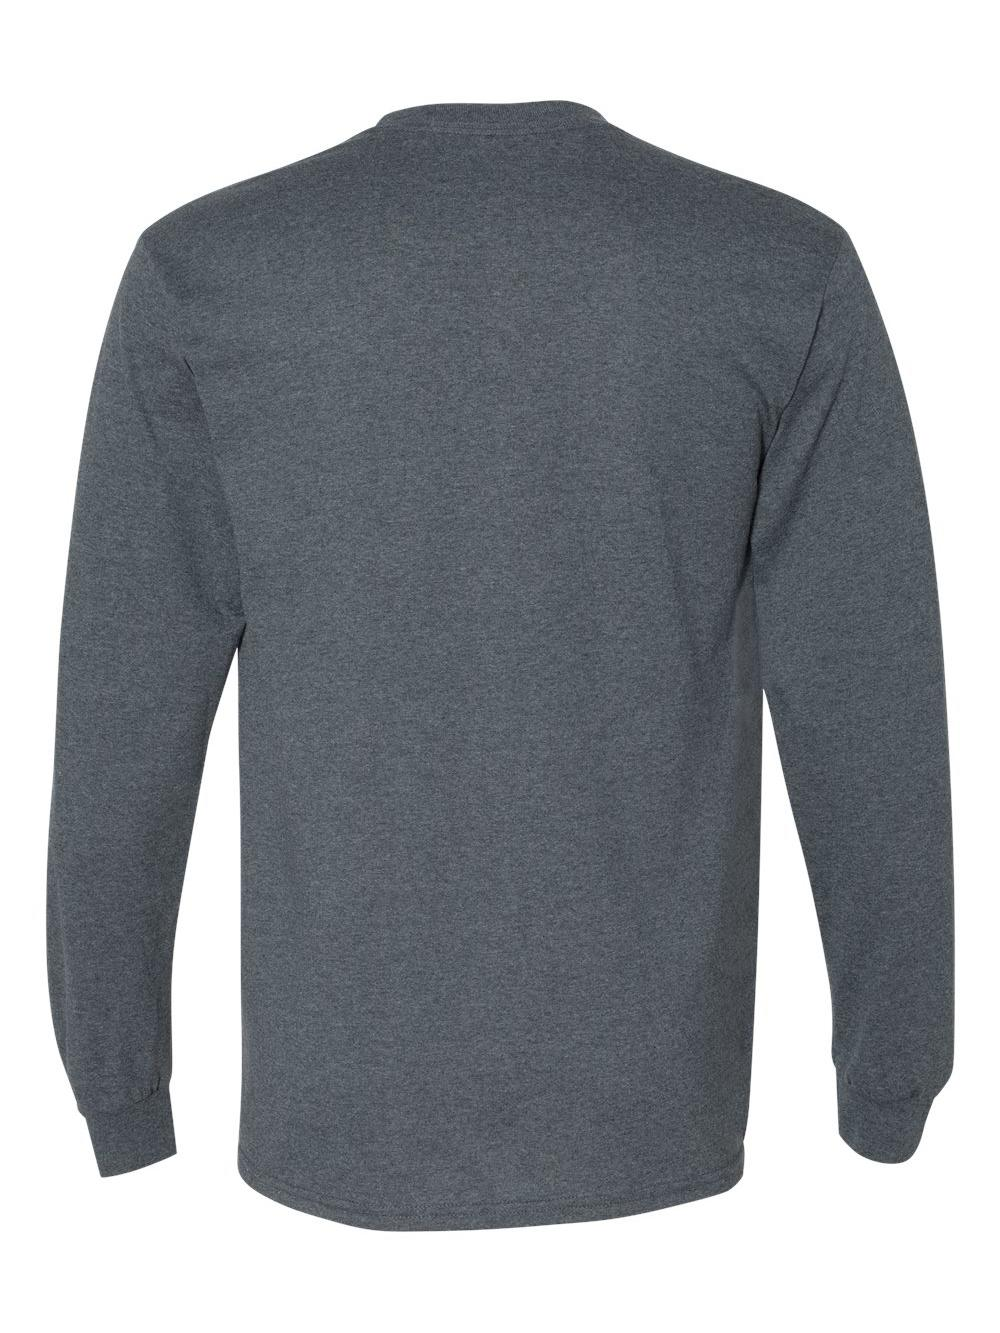 Gildan-DryBlend-50-50-Long-Sleeve-T-Shirt-8400 thumbnail 13